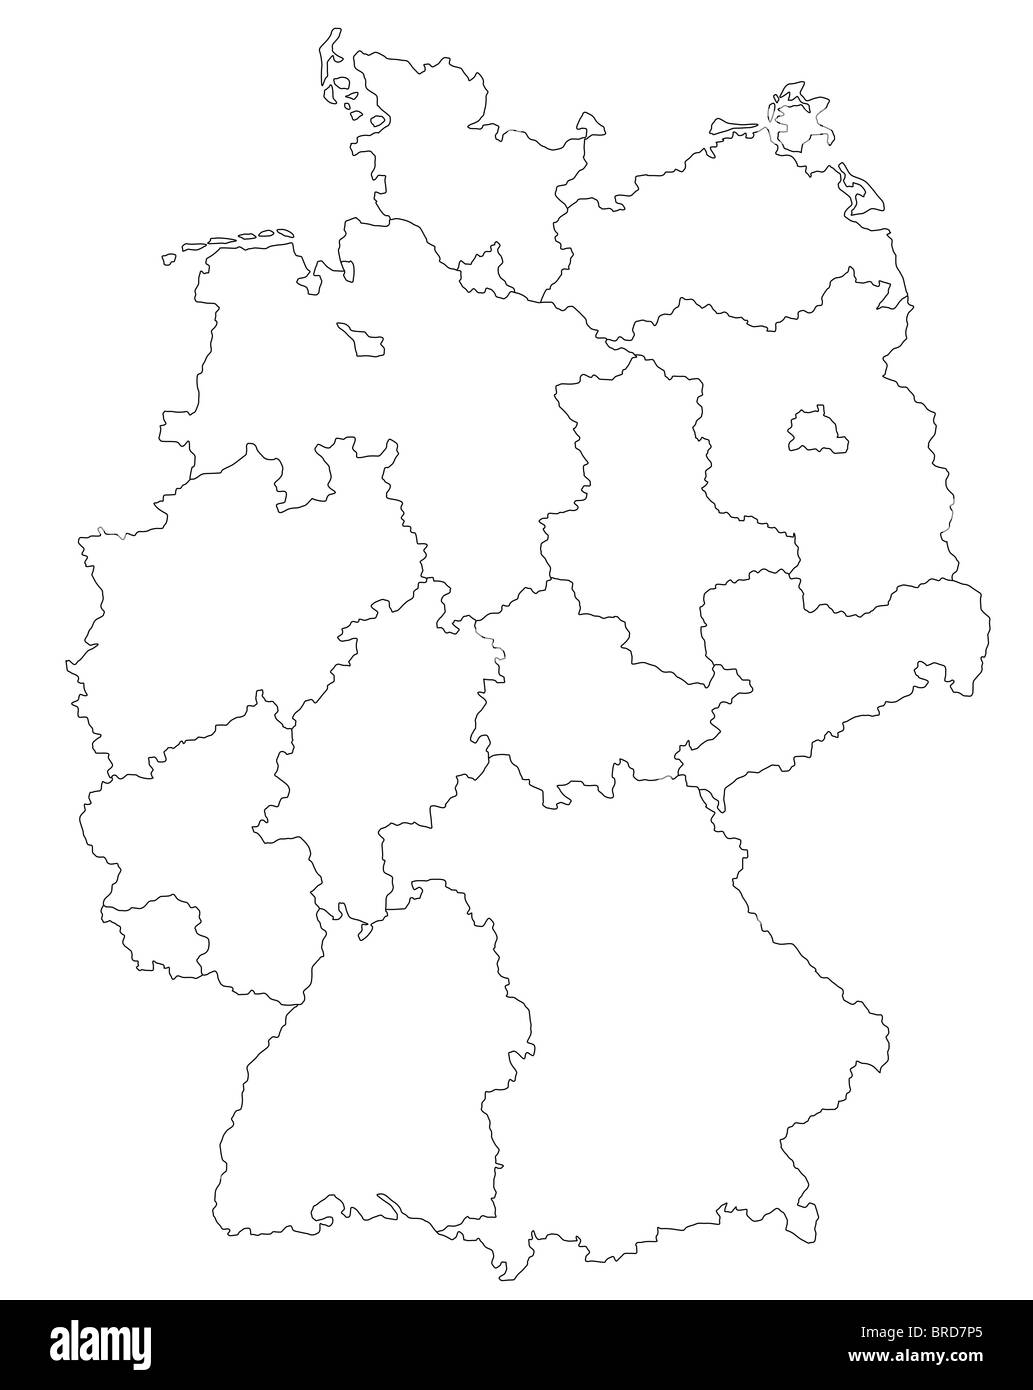 A Stylized Map Of Germany Showing All Single States All Isolated